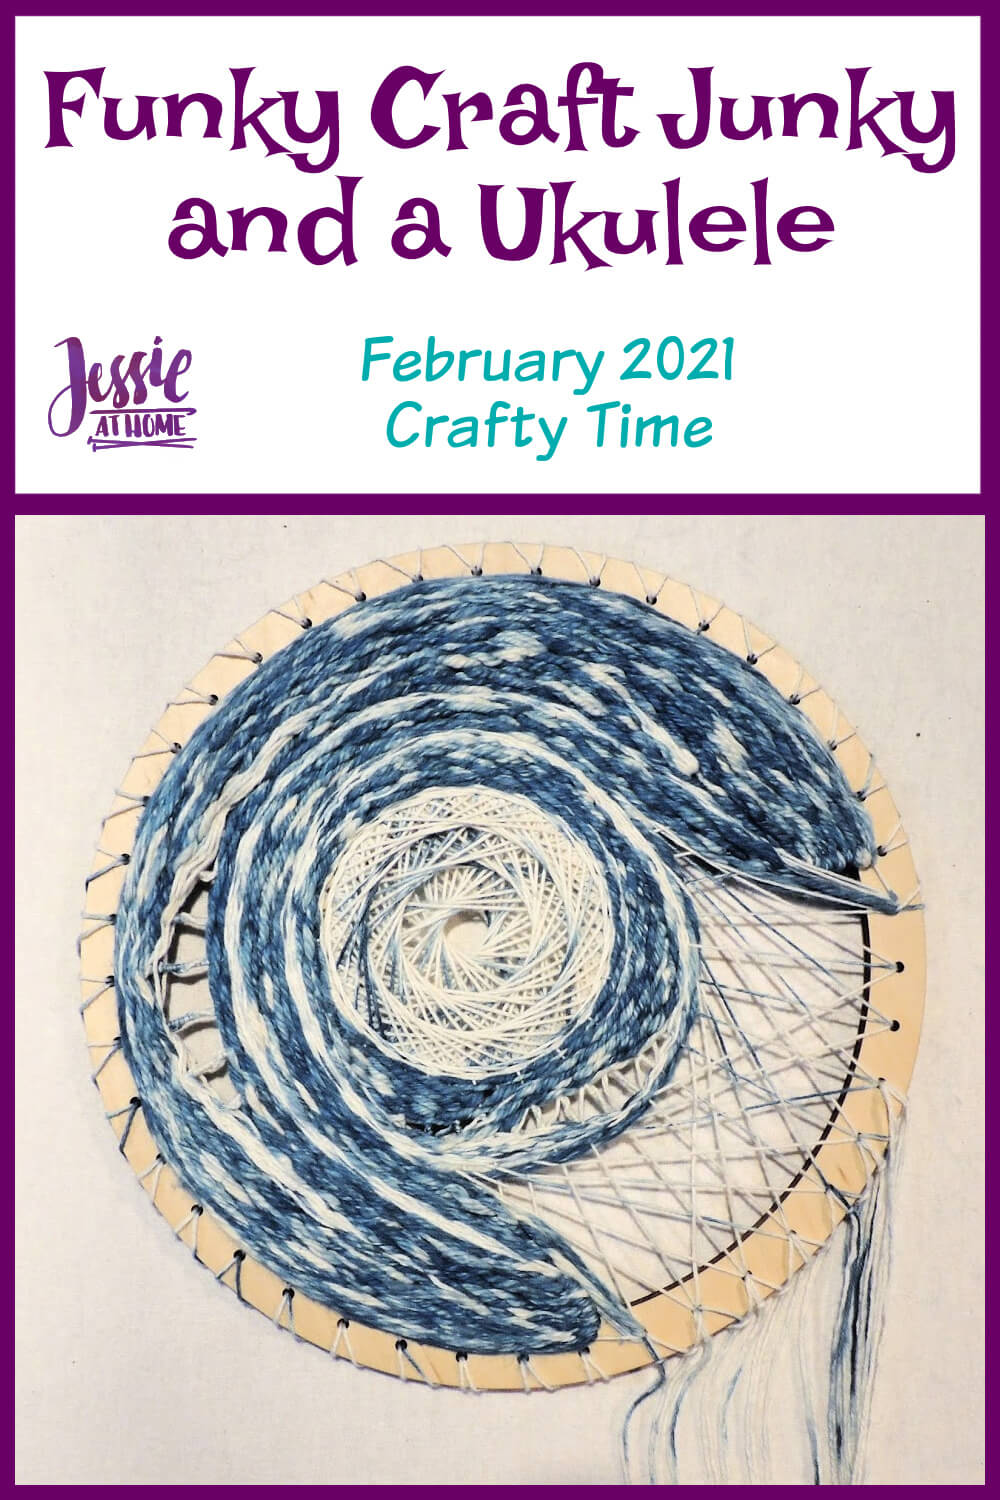 Funky Craft Junkie and a Ukulele - February 2021 Crafty Time with Jessie At Home